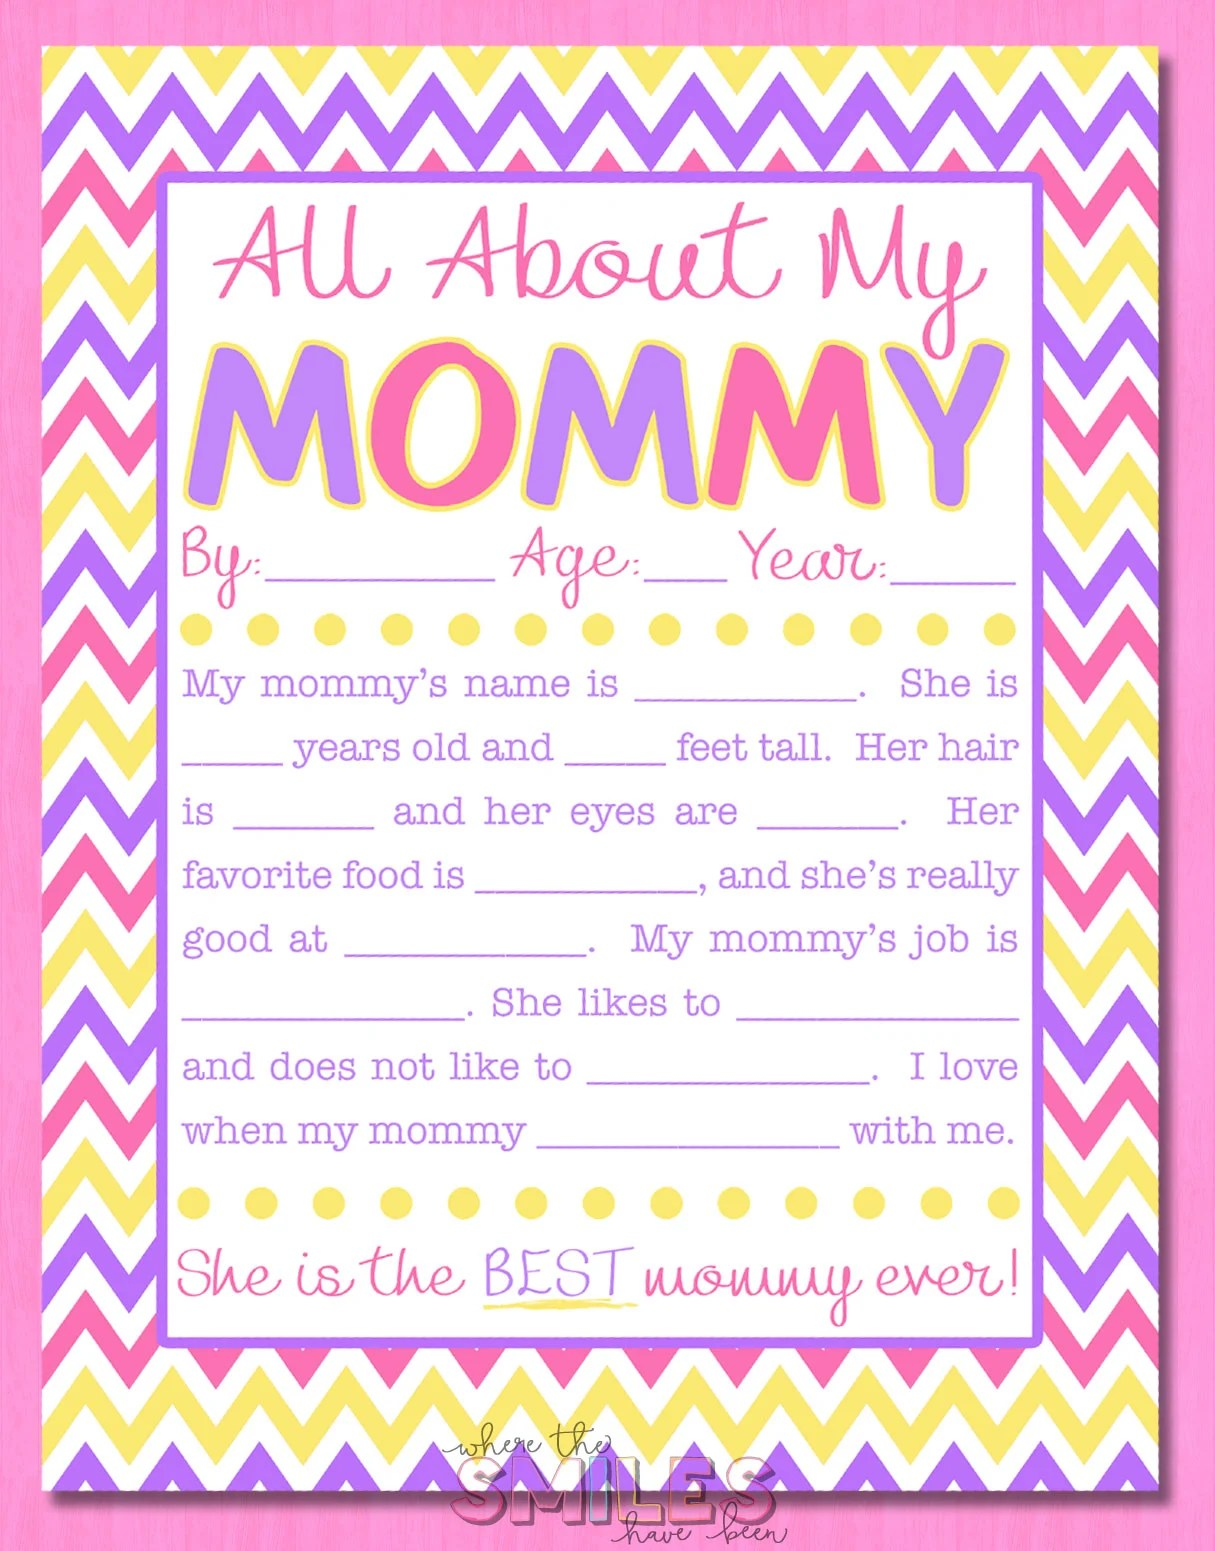 graphic about All About Mom Printable called All Above My Mommy Job interview with No cost Printable!